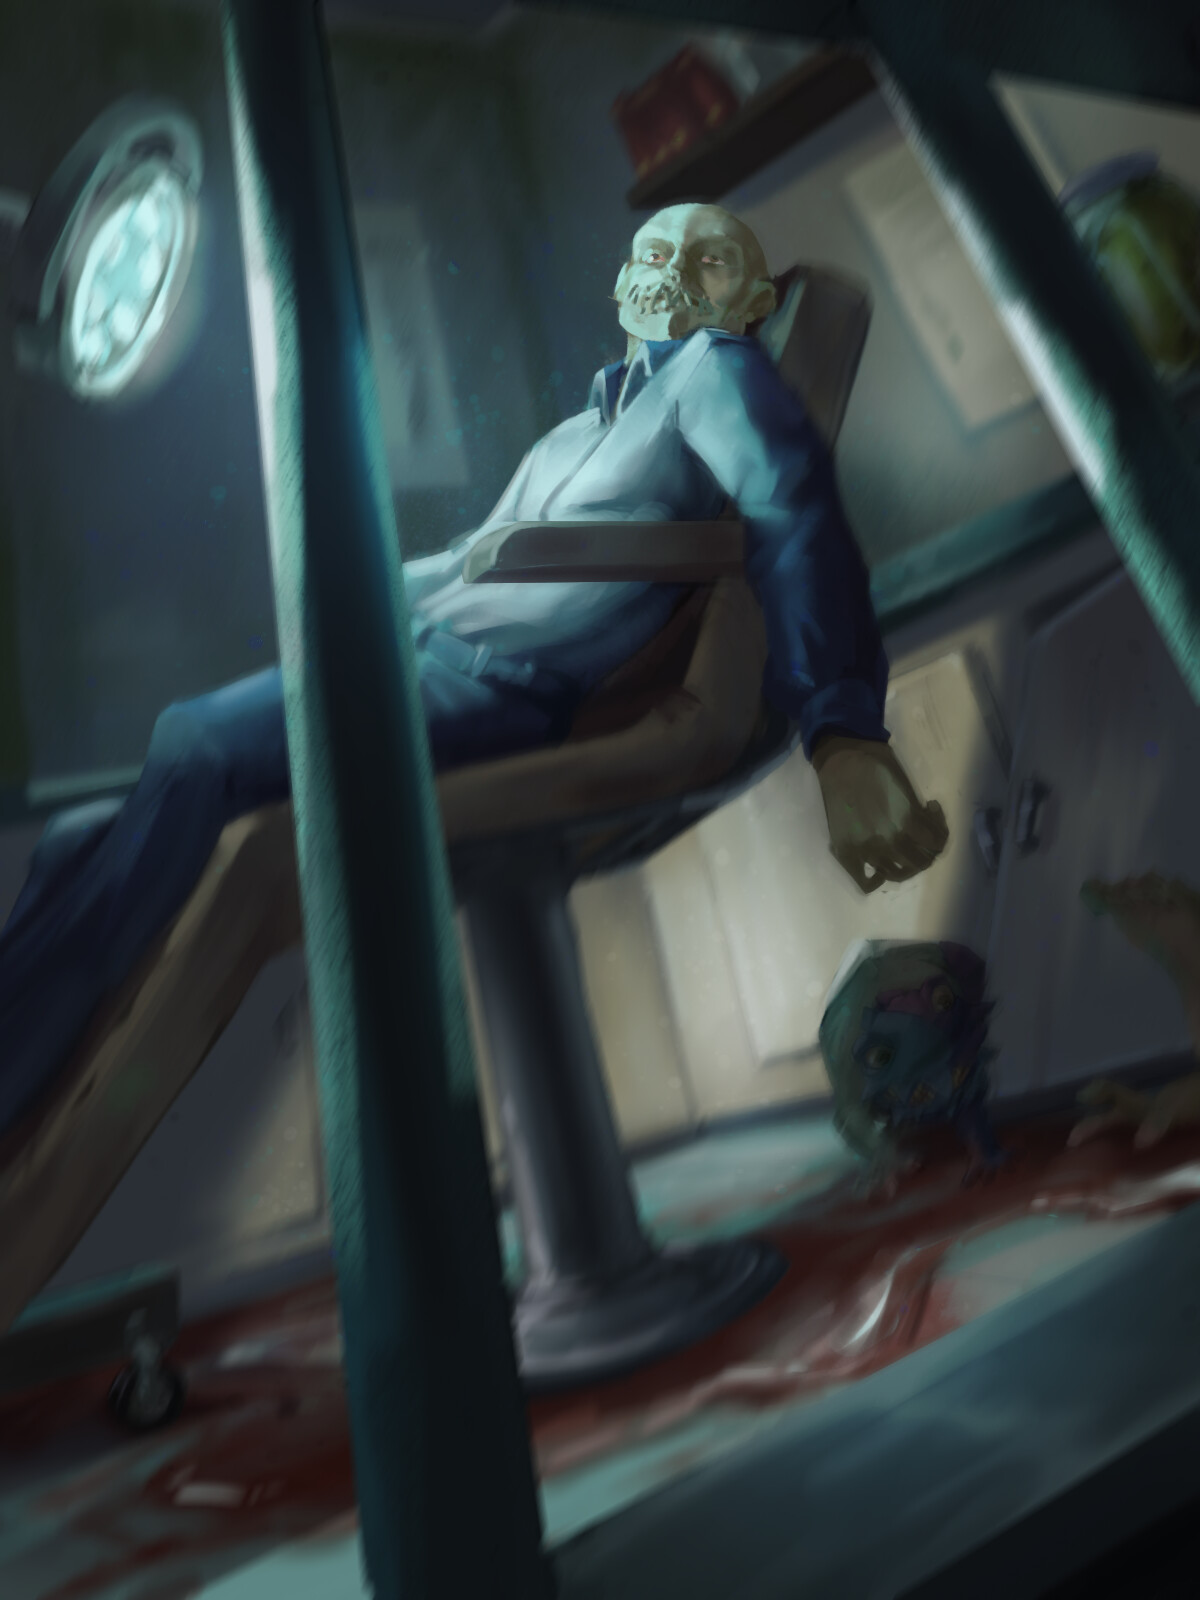 A zonked out host in Riley's operating room, with a small rat puppet lurking in the shadows.